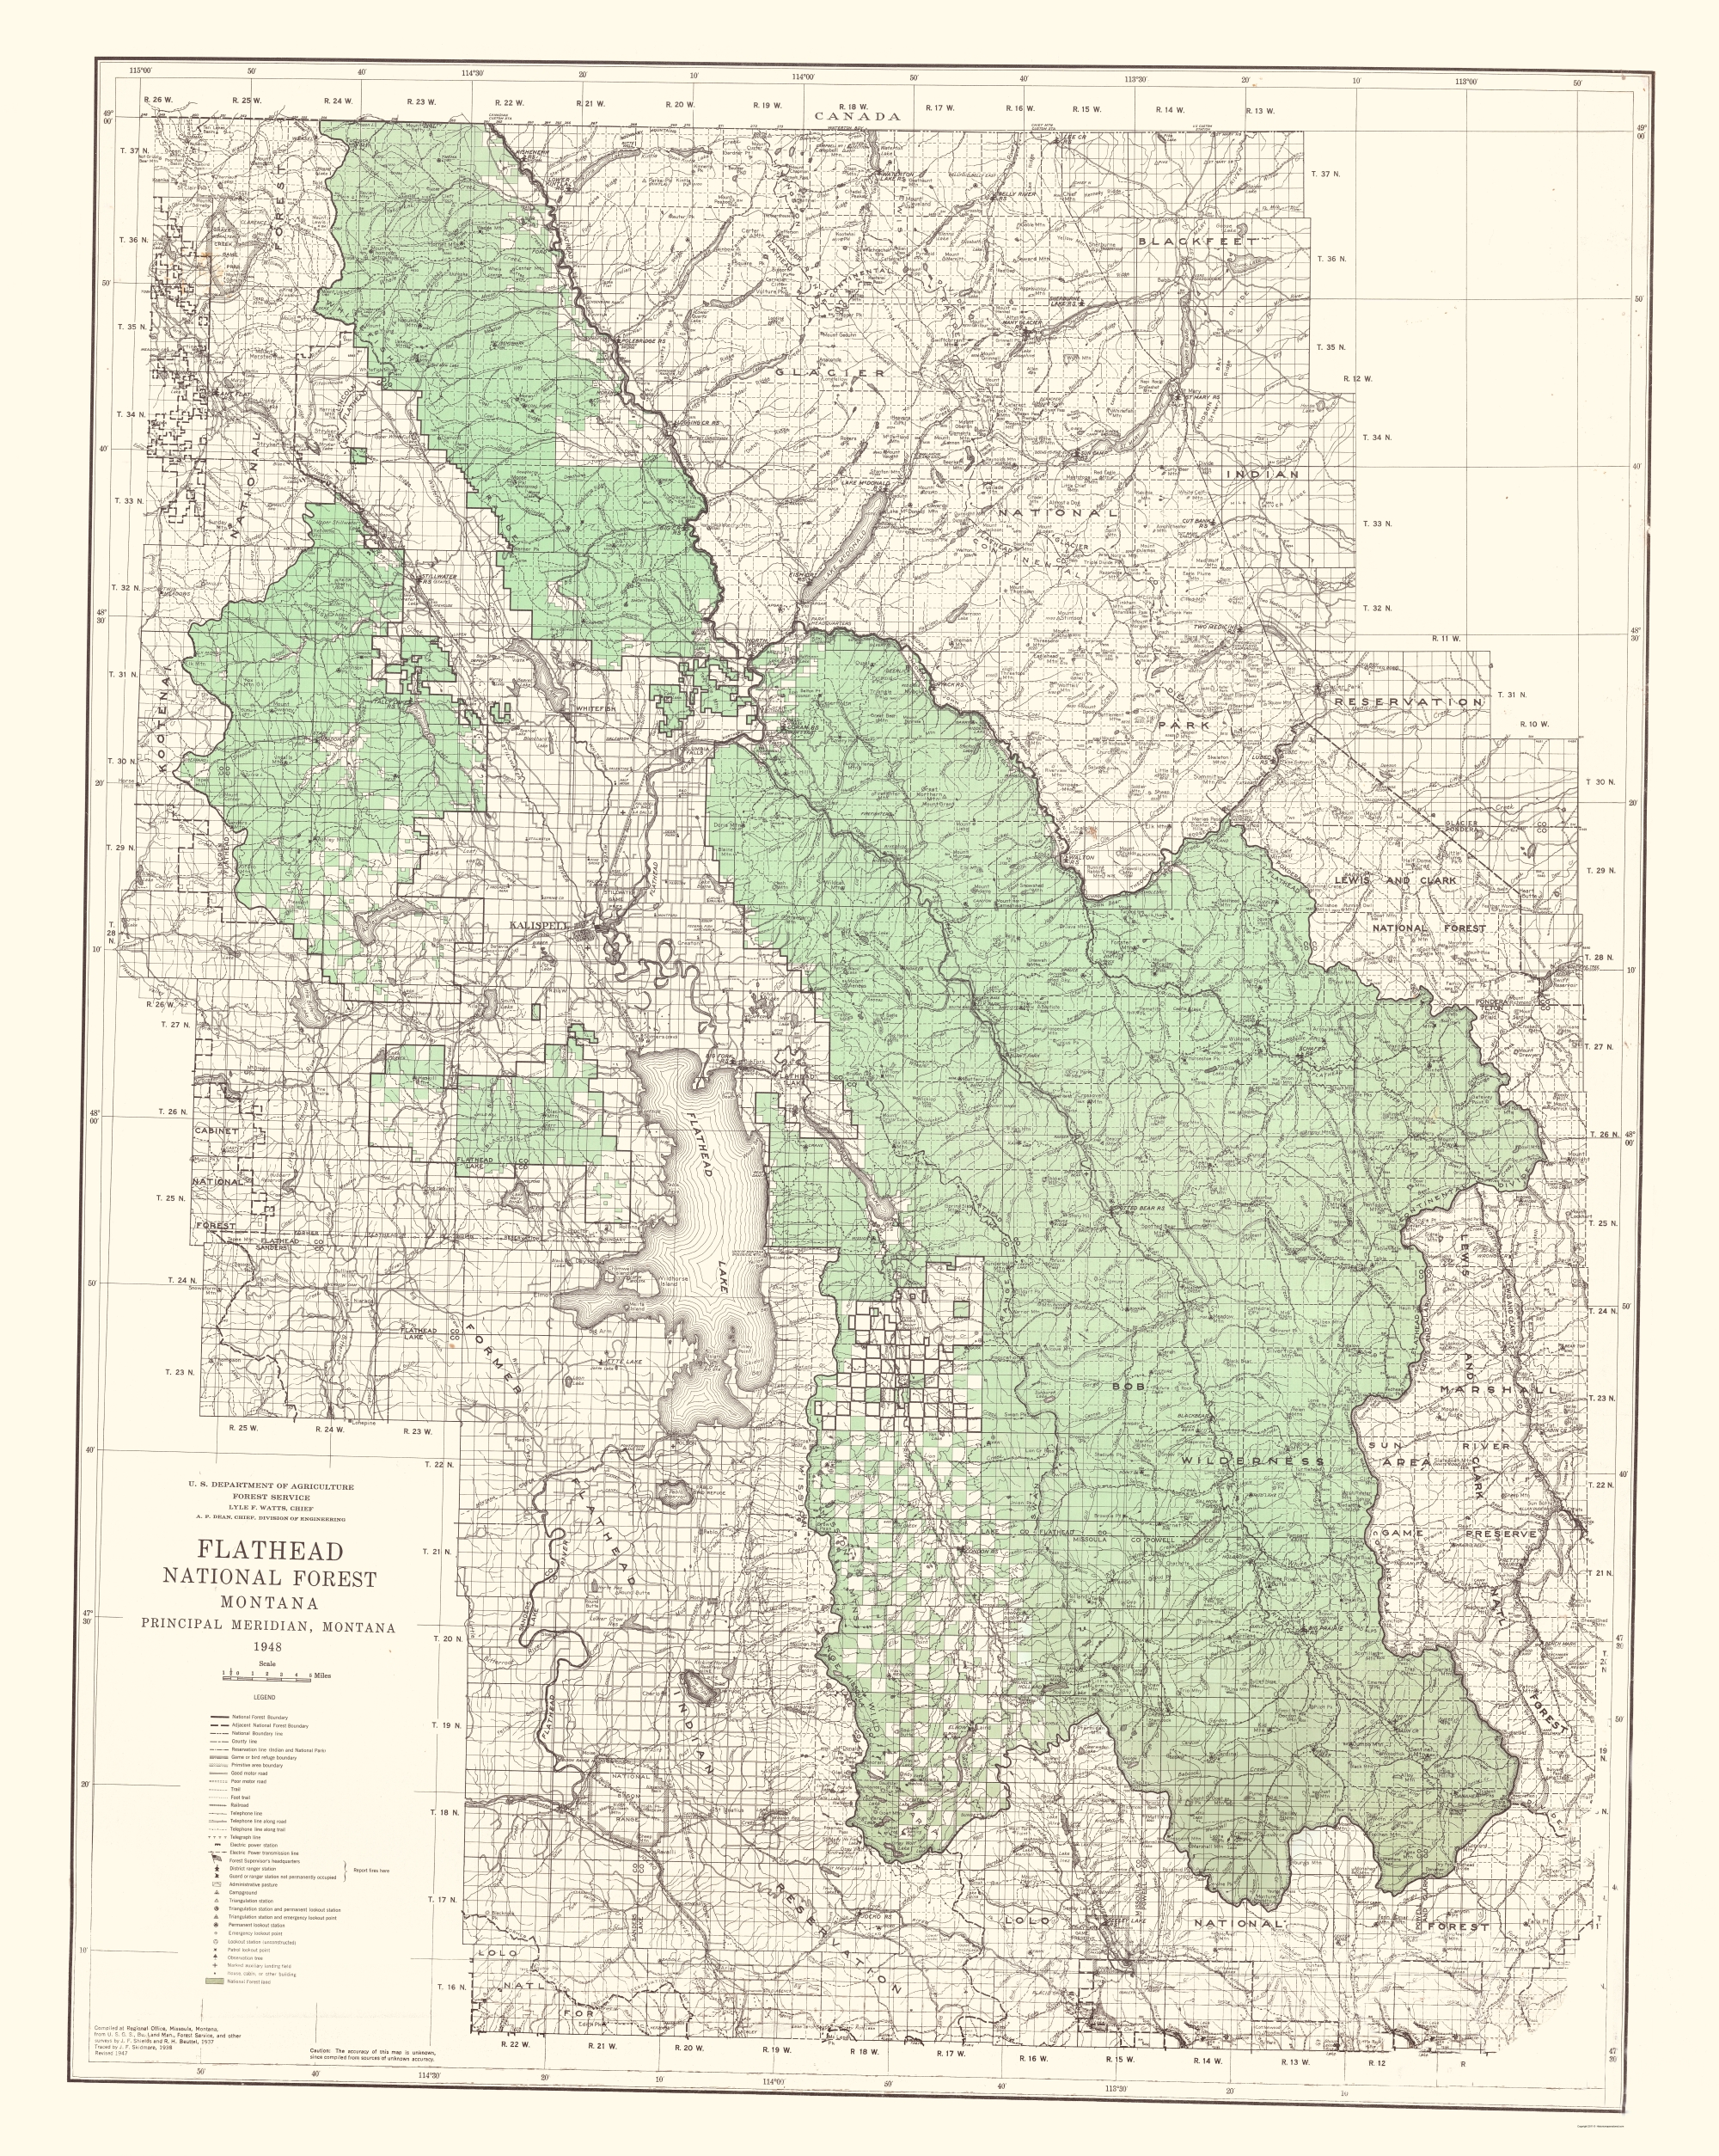 Topographical Map Flathead National Forest Montana - Montana topo map